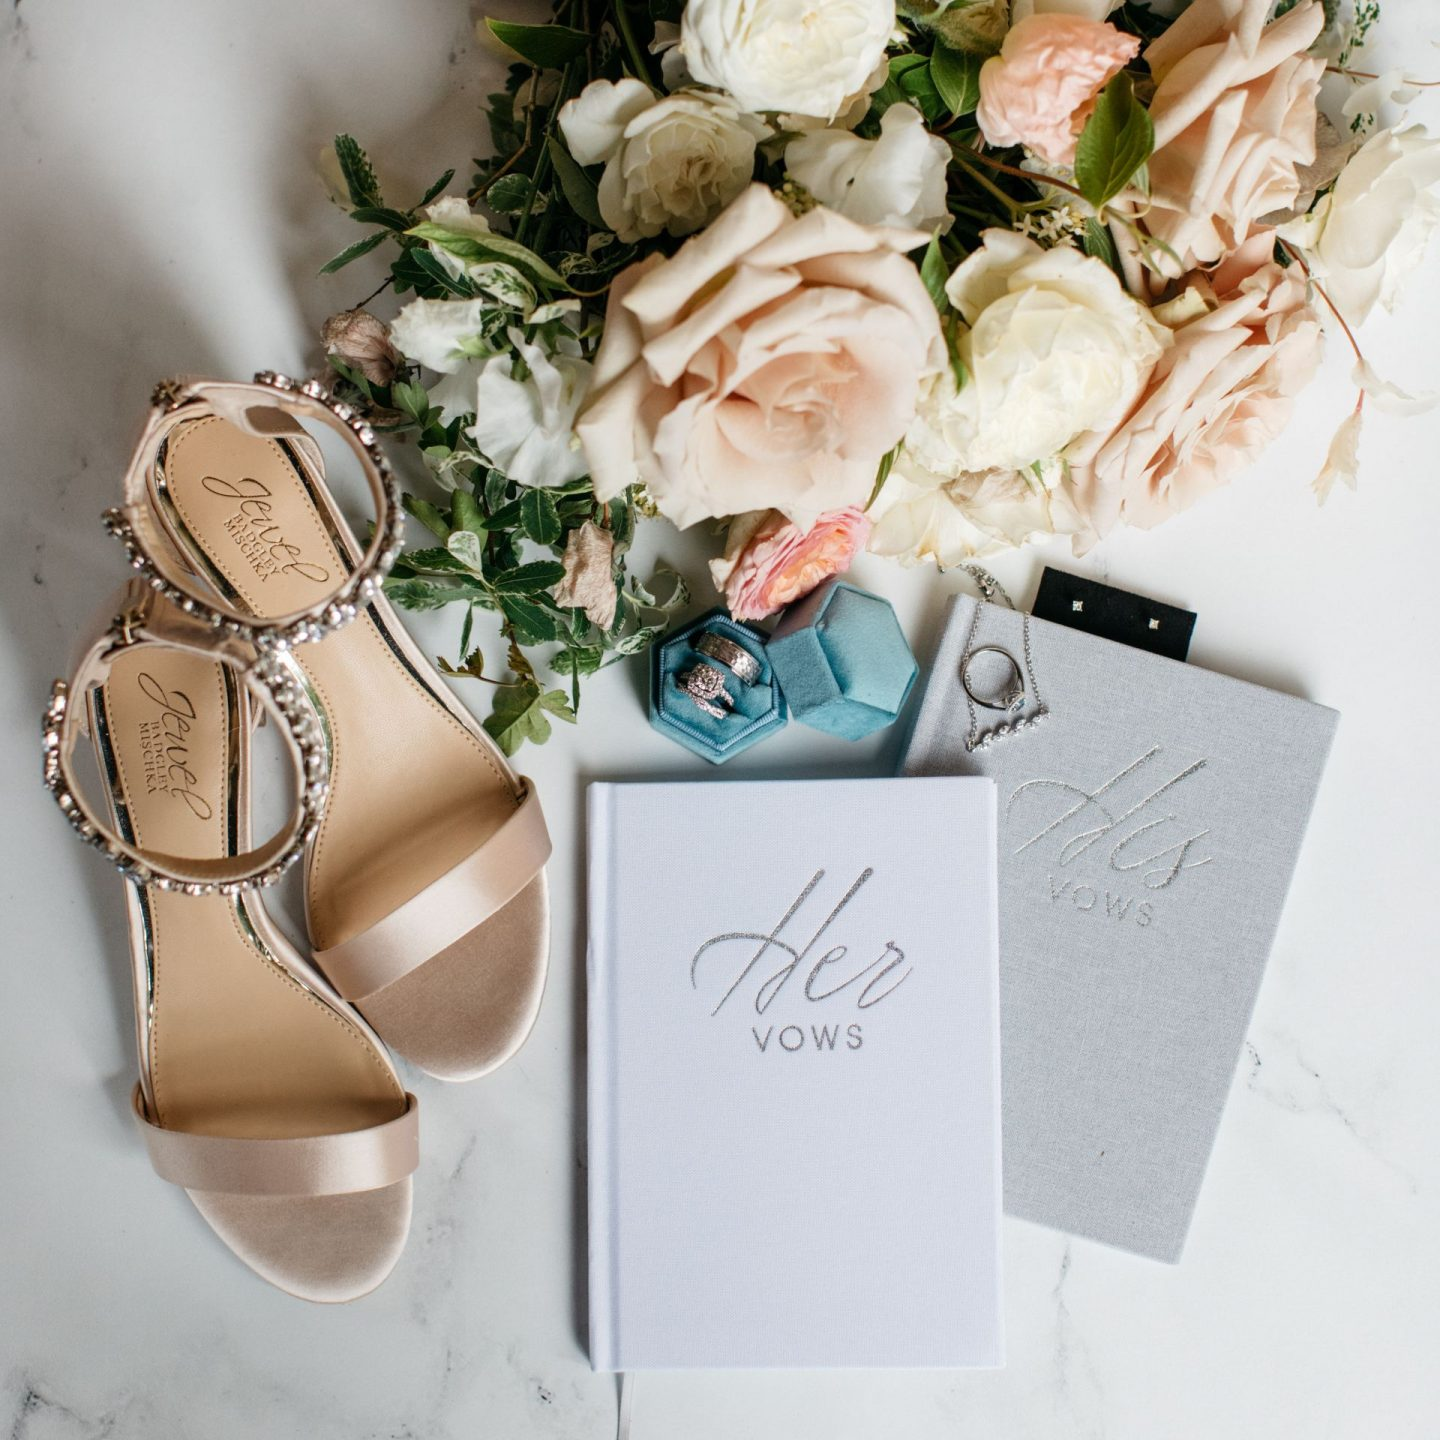 wedding details - wedding planning tips for couples - advice for your wedding day - www.emmasedition.com